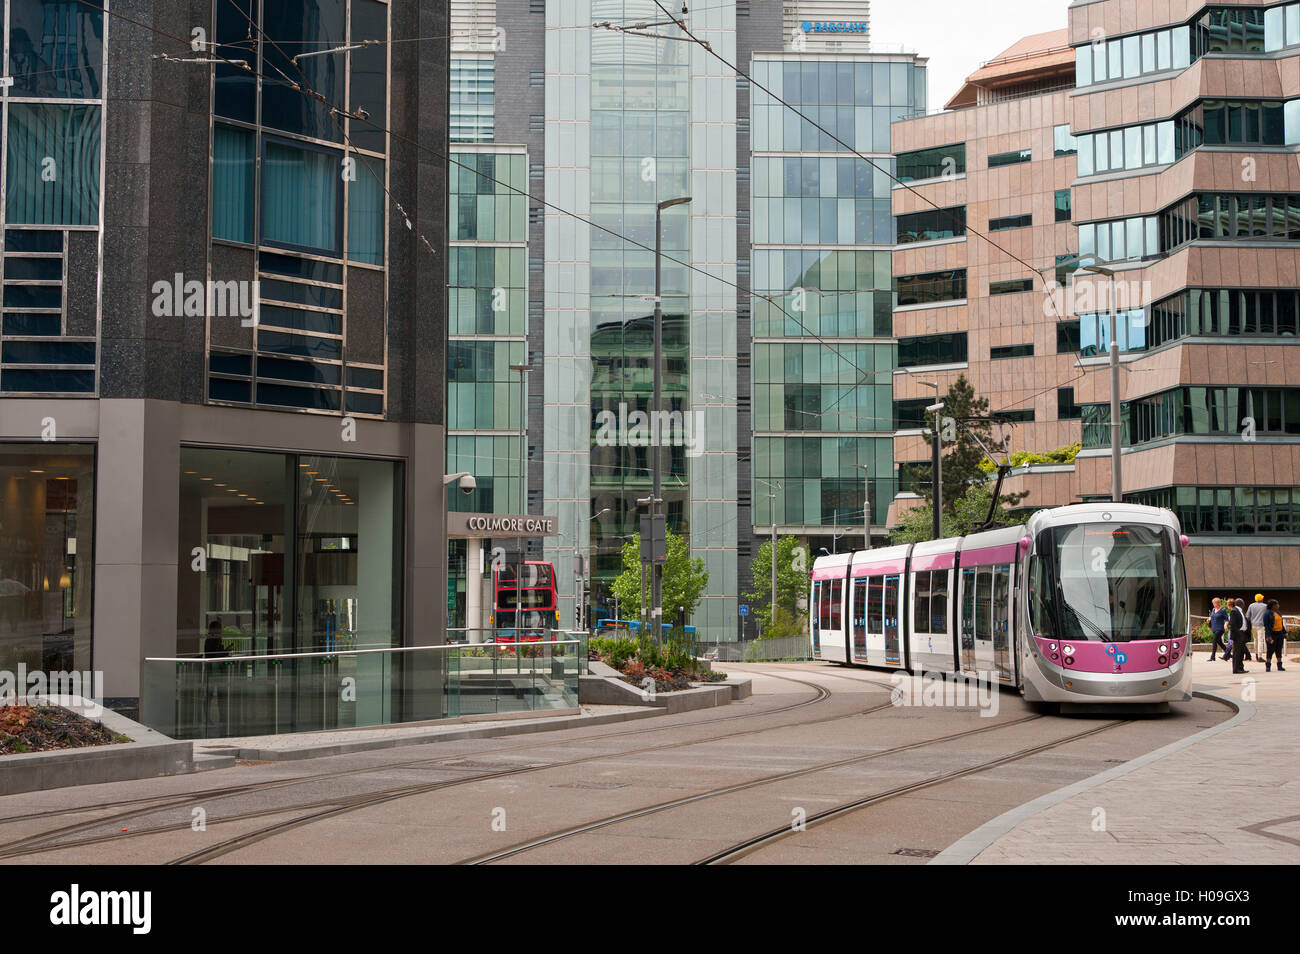 Tram system in Birmingham which runs from Birmingham to Wolverhampton, Birmingham, England, United Kingdom, Europe - Stock Image